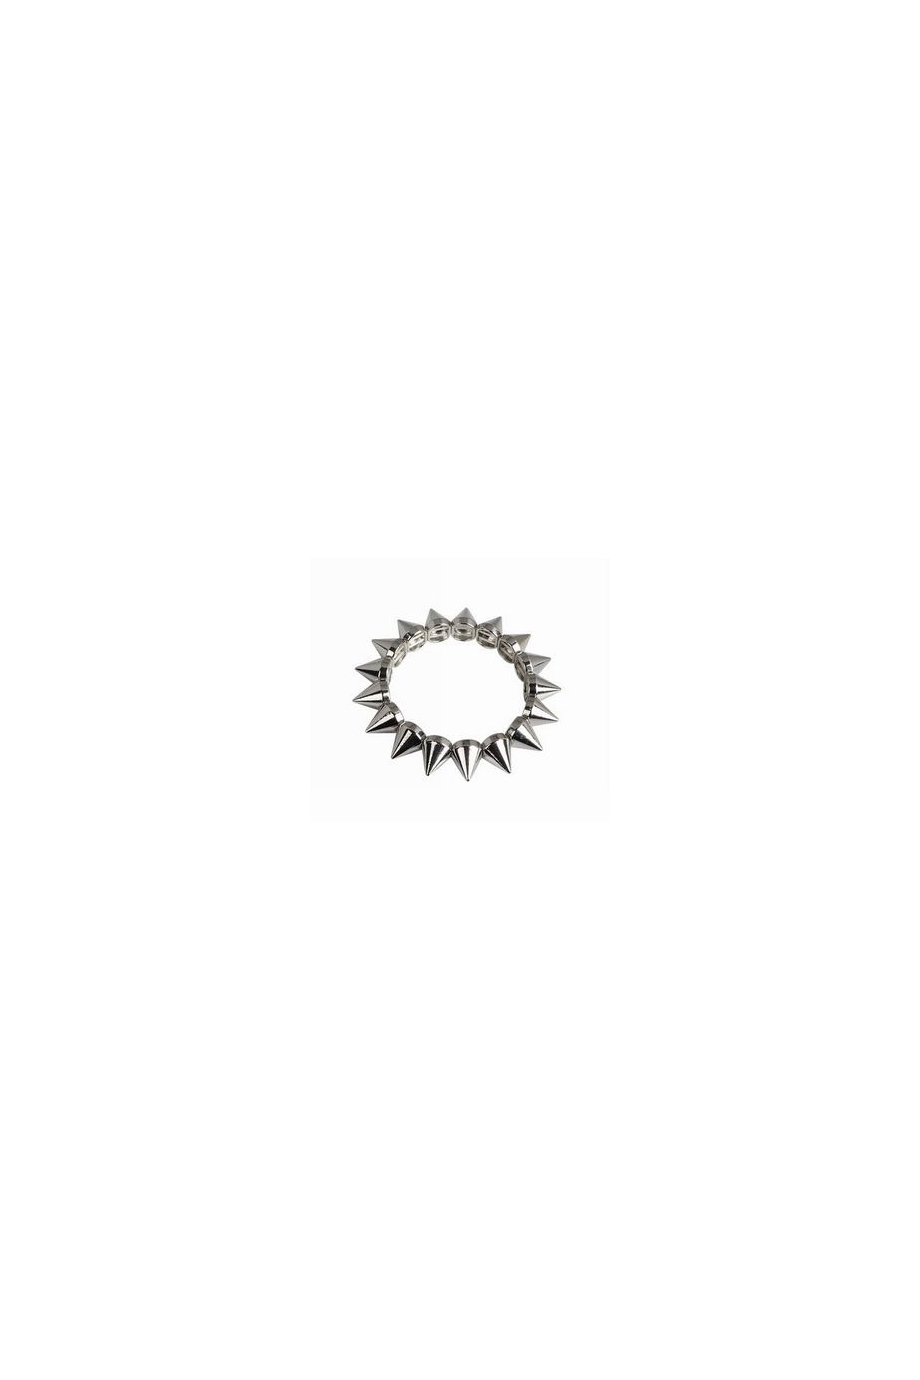 ROWTAG Spiky Bracelet Runway Accessories | The Latest Women Fashion Online Accessories & Jewelry | JESSICABUURMAN [3206] - $29.00 : JESSICABUURMAN.COM